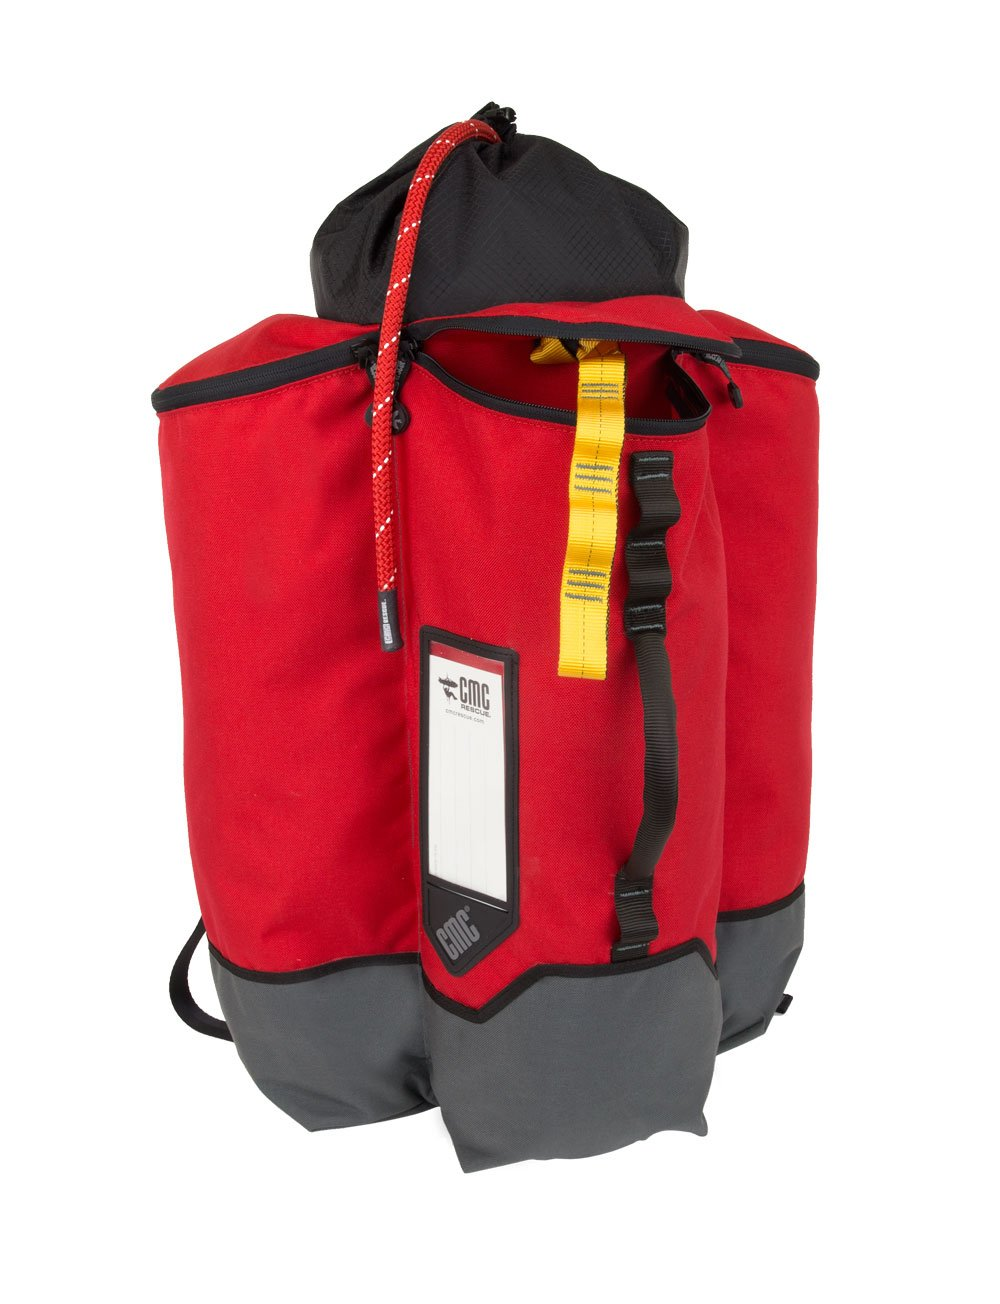 CMC Rescue 431151 Rope & Equipment Bags X-Large - 4100 ci (67 L) Orange by CMC